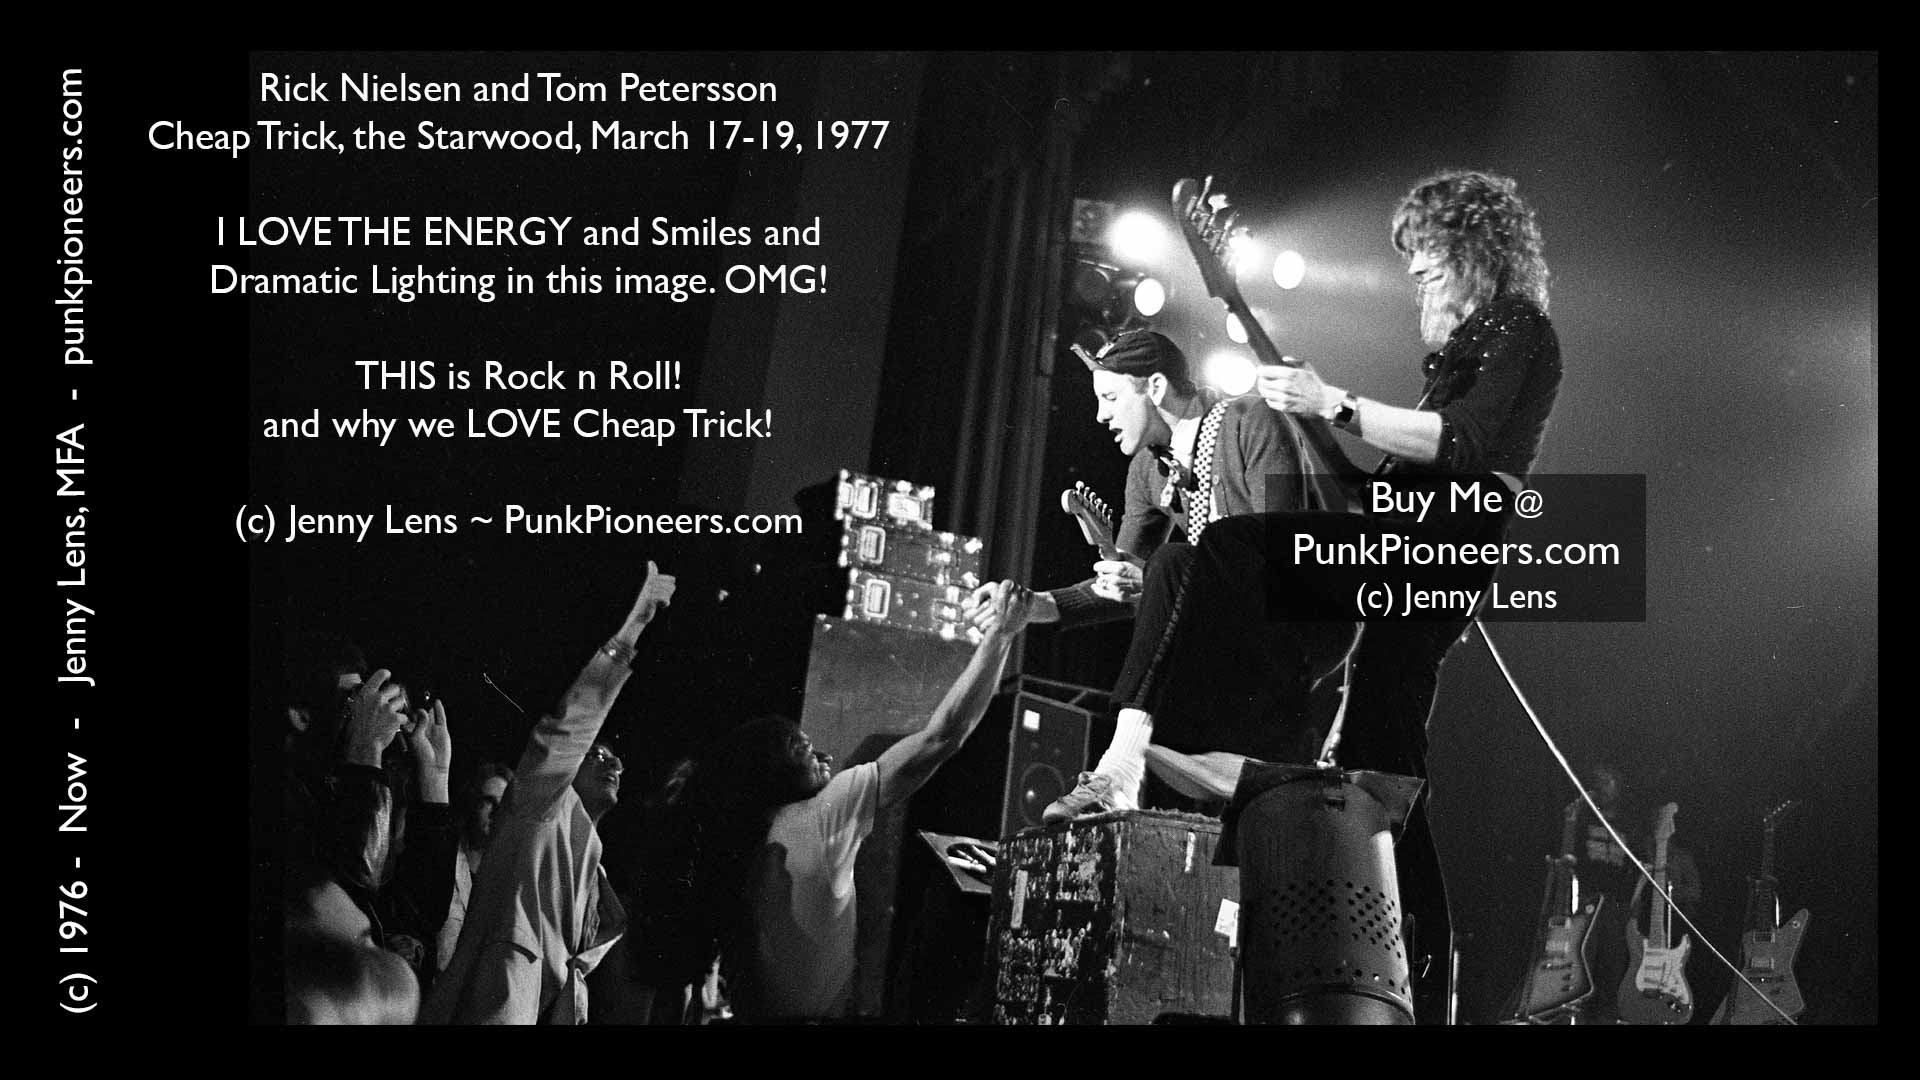 Cheap Trick, Rick Nielsen, Tom Petersson, Starwood, March 1977, Jenny Lens, PunkPioneers.com